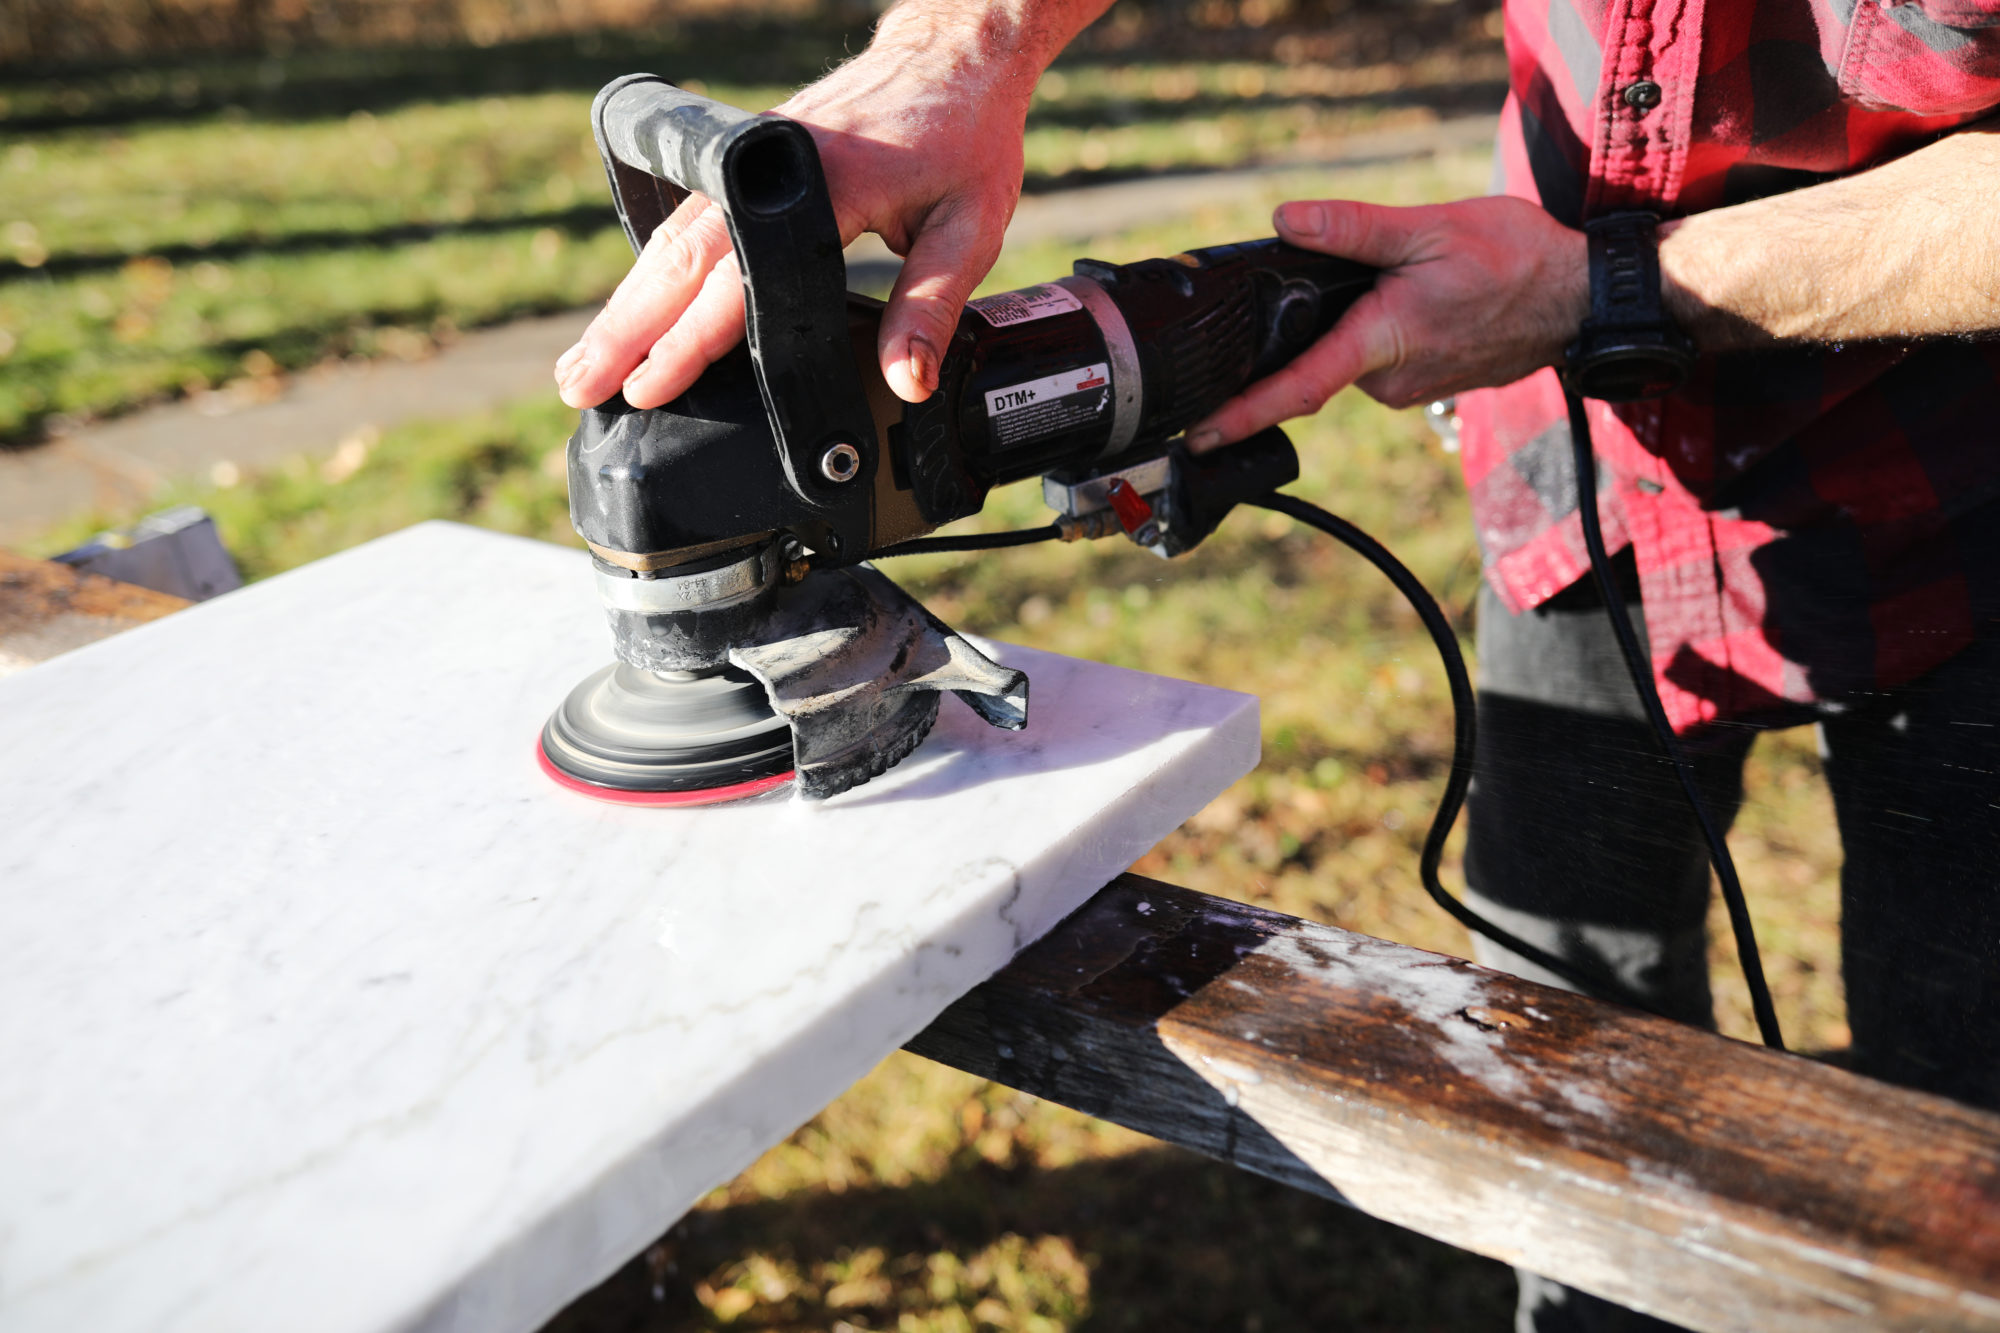 The-Grit-and-Polish-DIY-Marble-Honing-1-e1543274829516.jpg